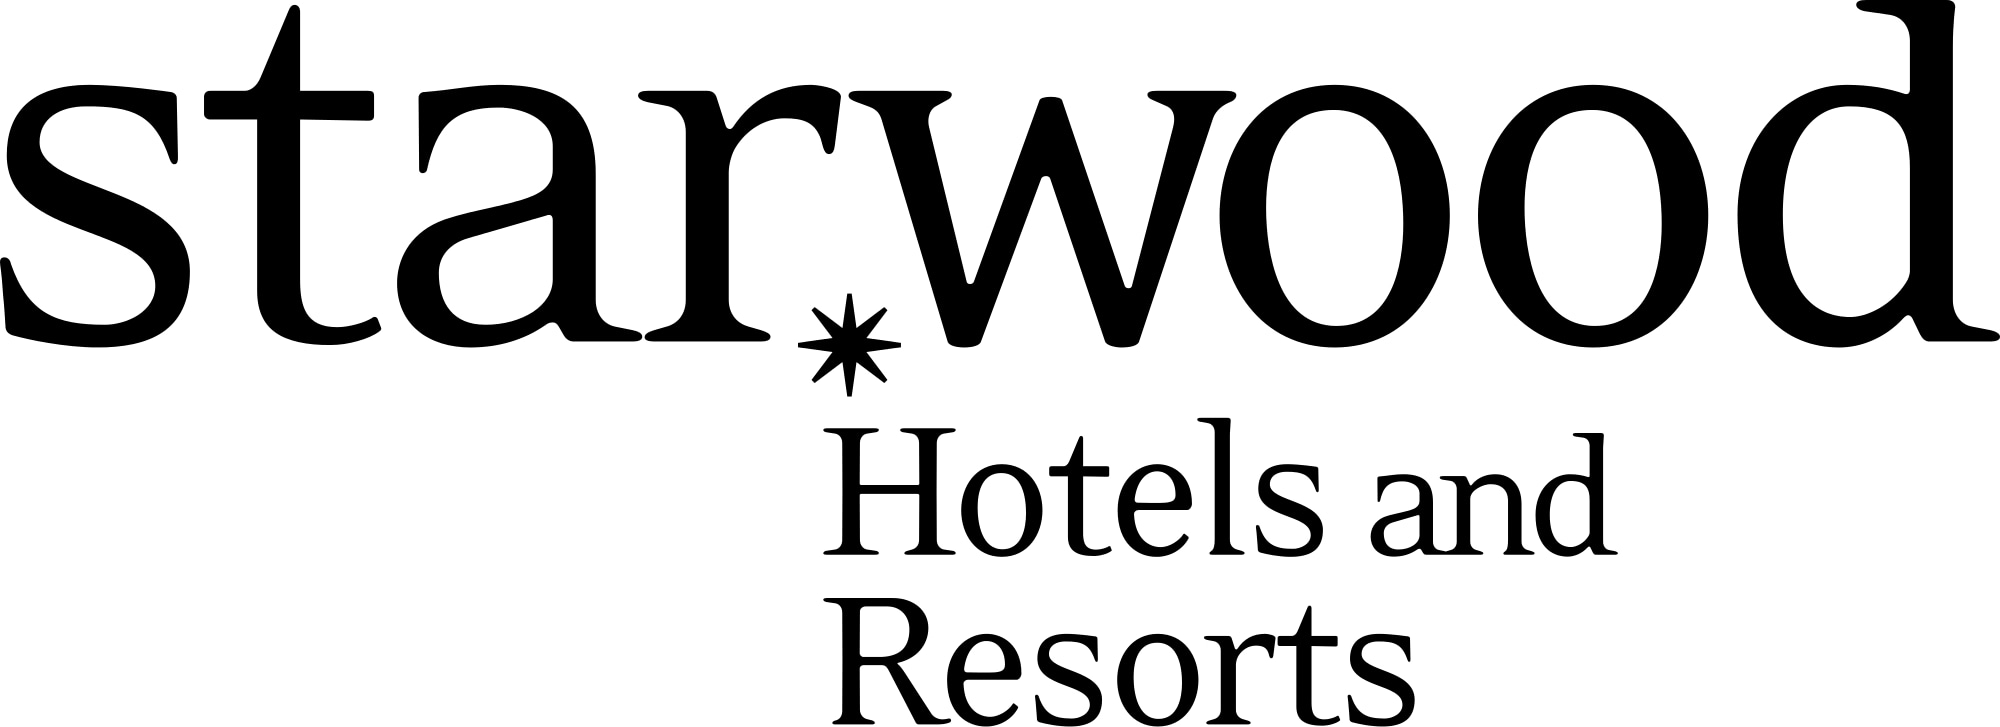 Starwood Hotels & Resorts promo codes